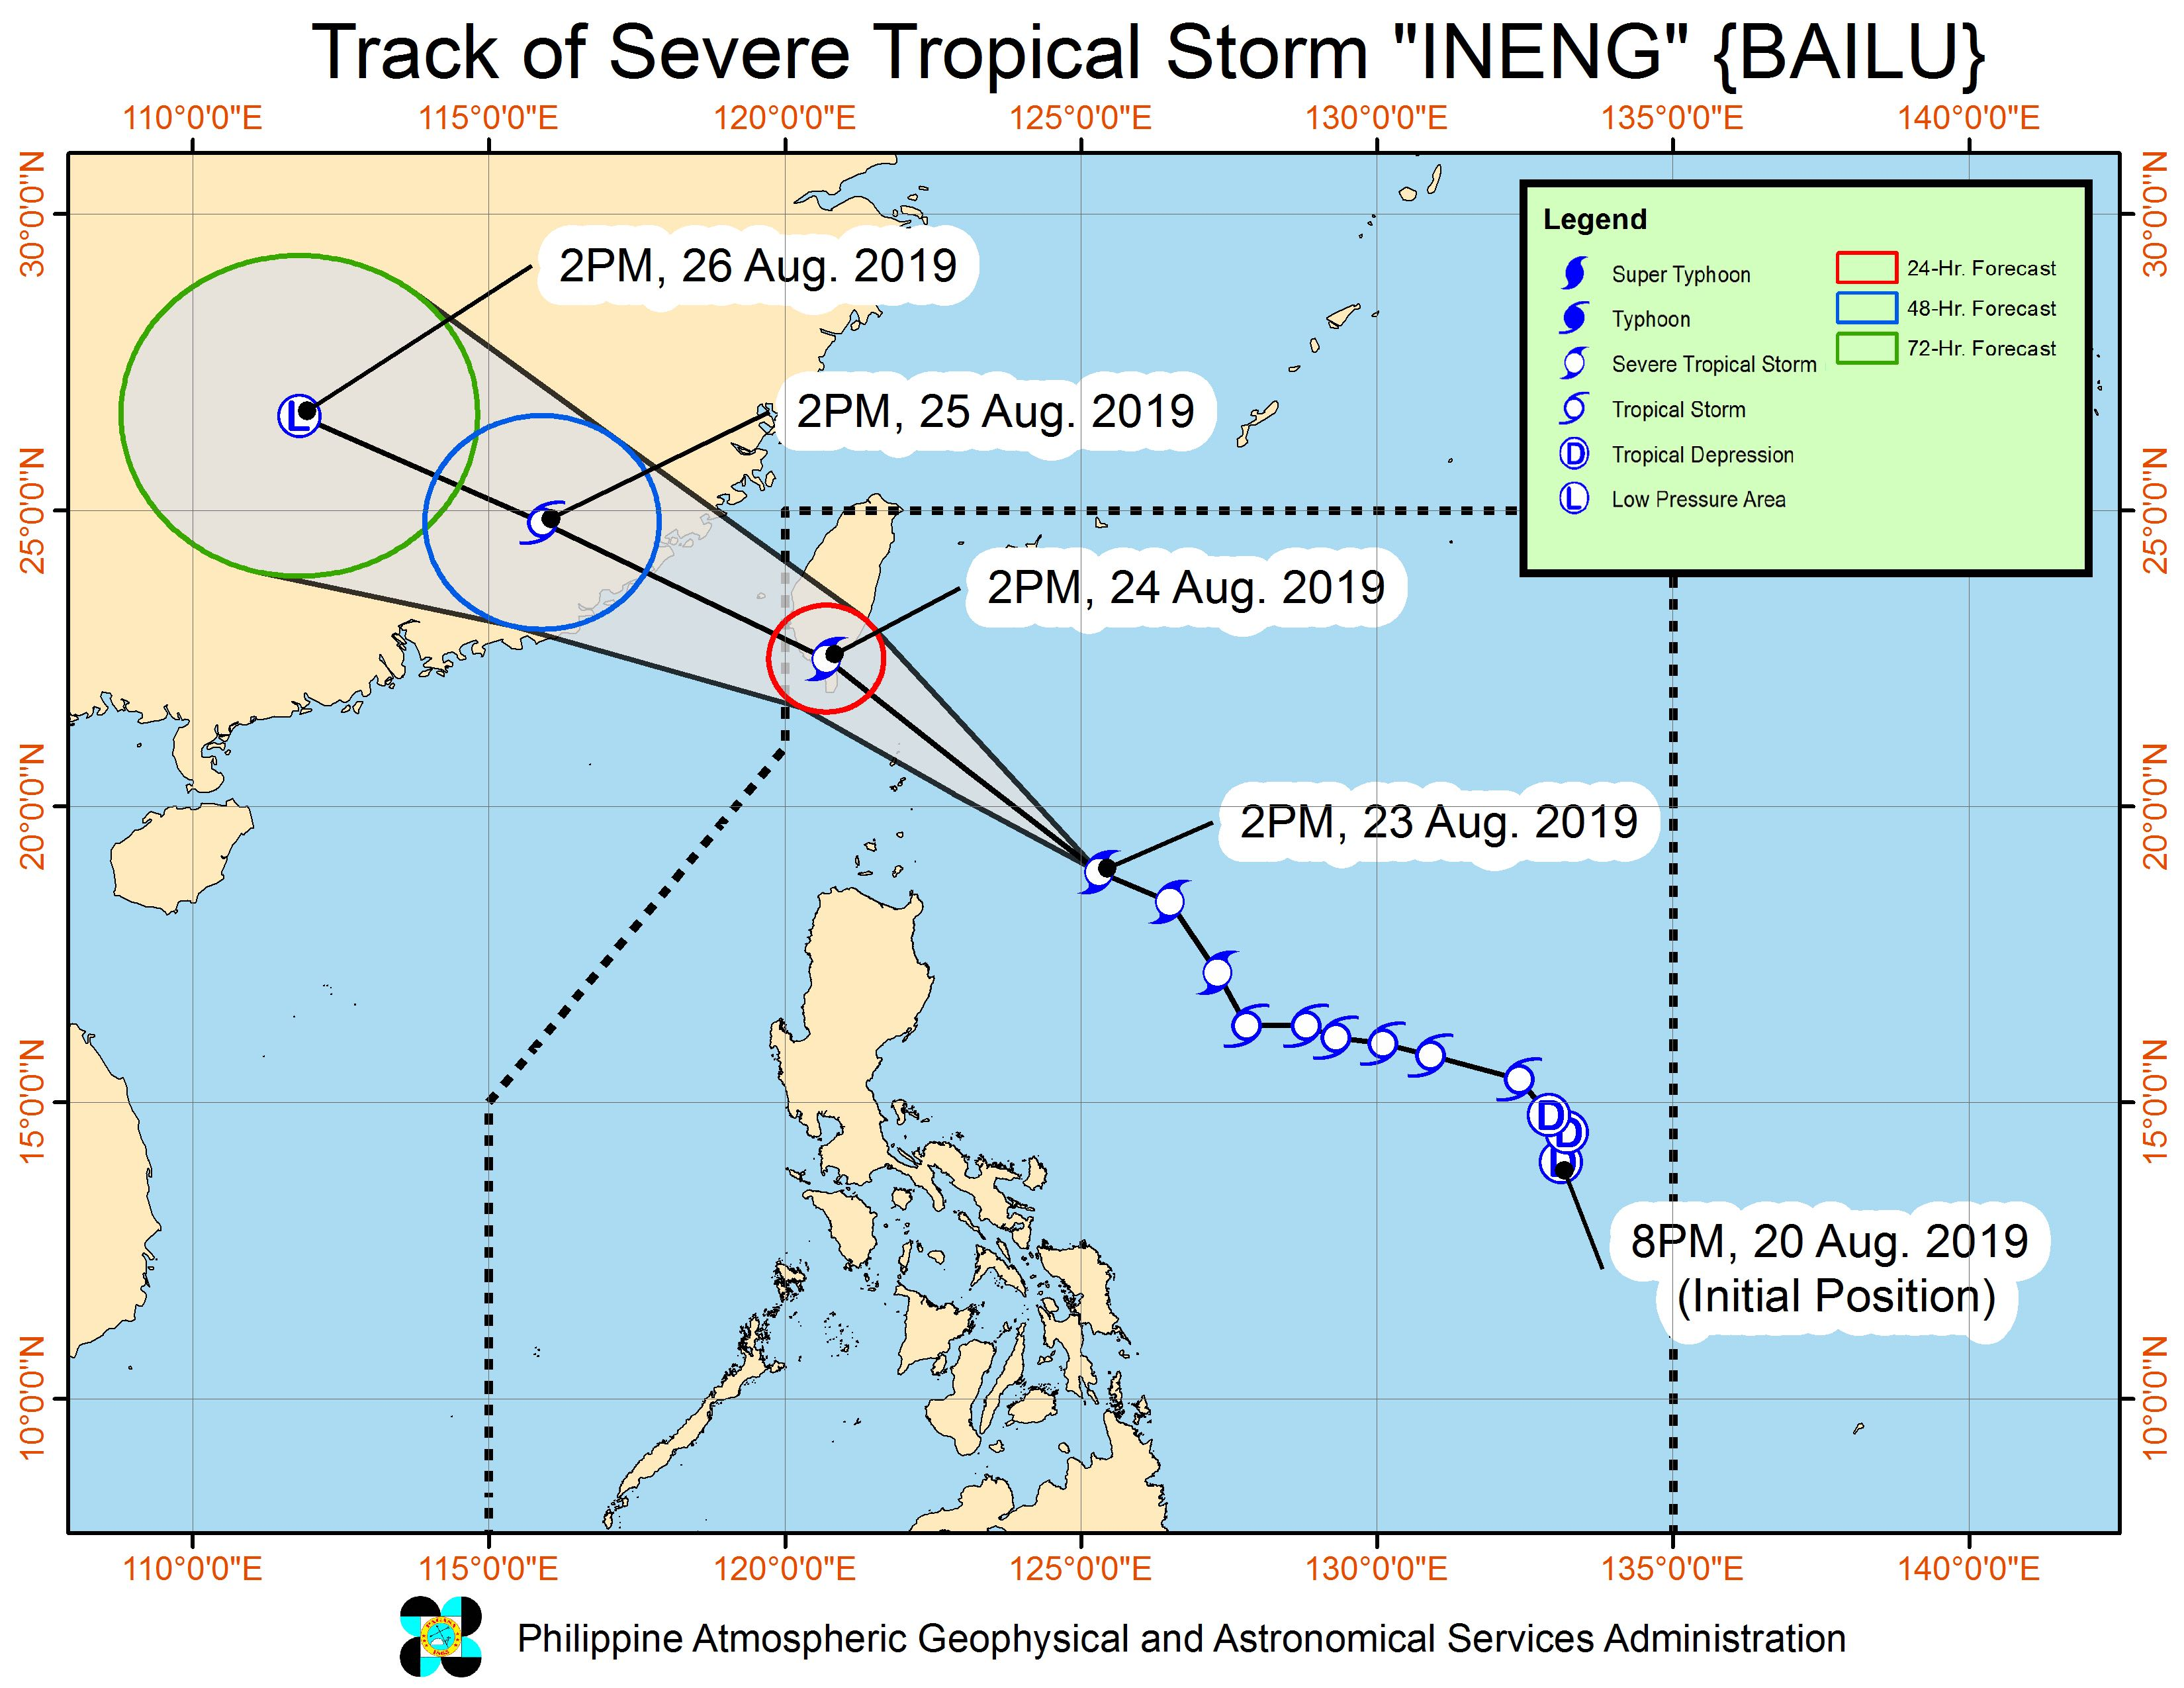 Forecast track of Severe Tropical Storm Ineng (Bailu) as of August 23, 2019, 5 pm. Image from PAGASA